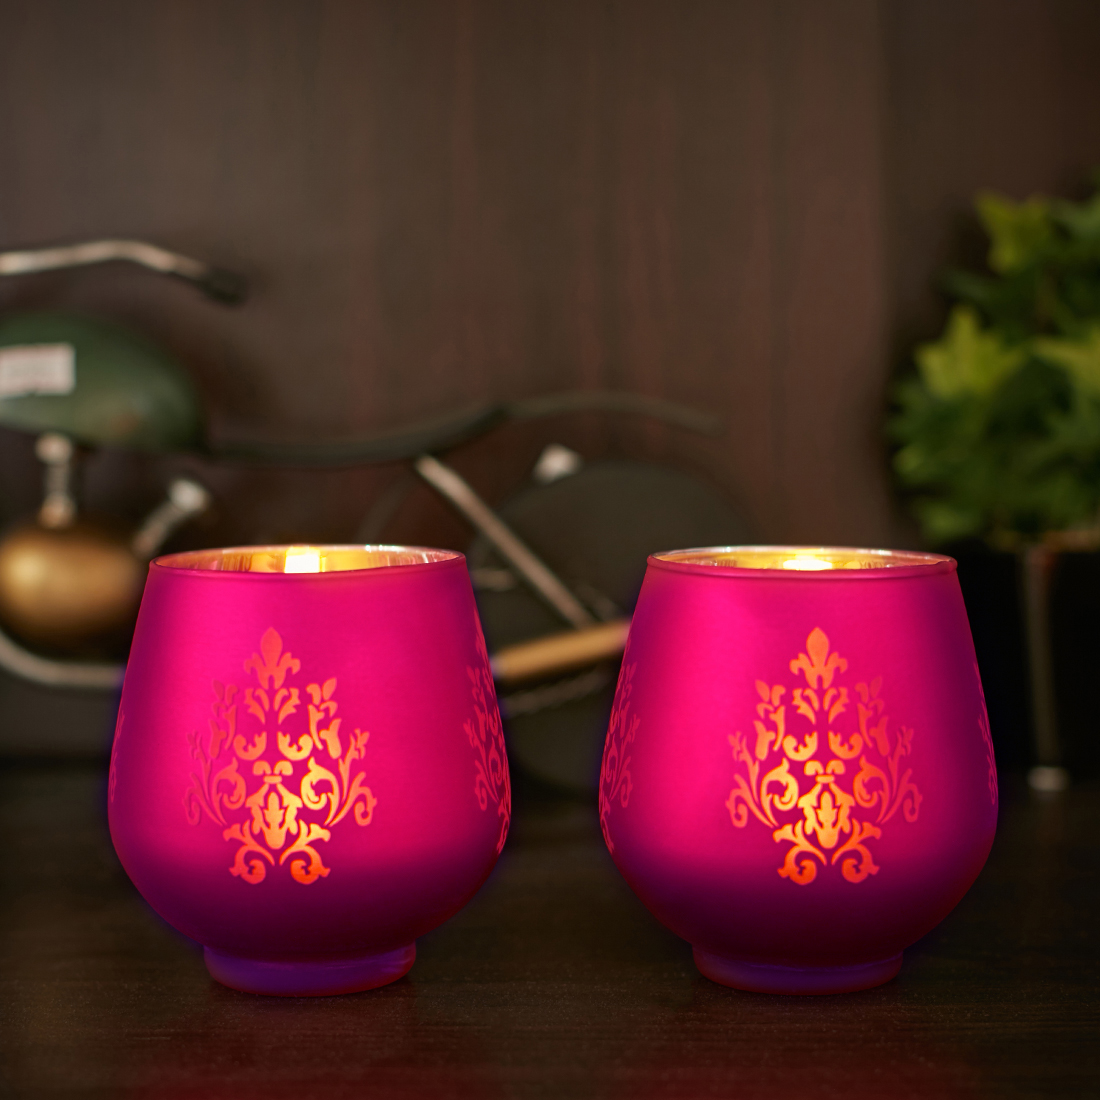 Zahara Set Of 2 Flower Etched Glass Candle Holders in PINK Colour by Living Essence